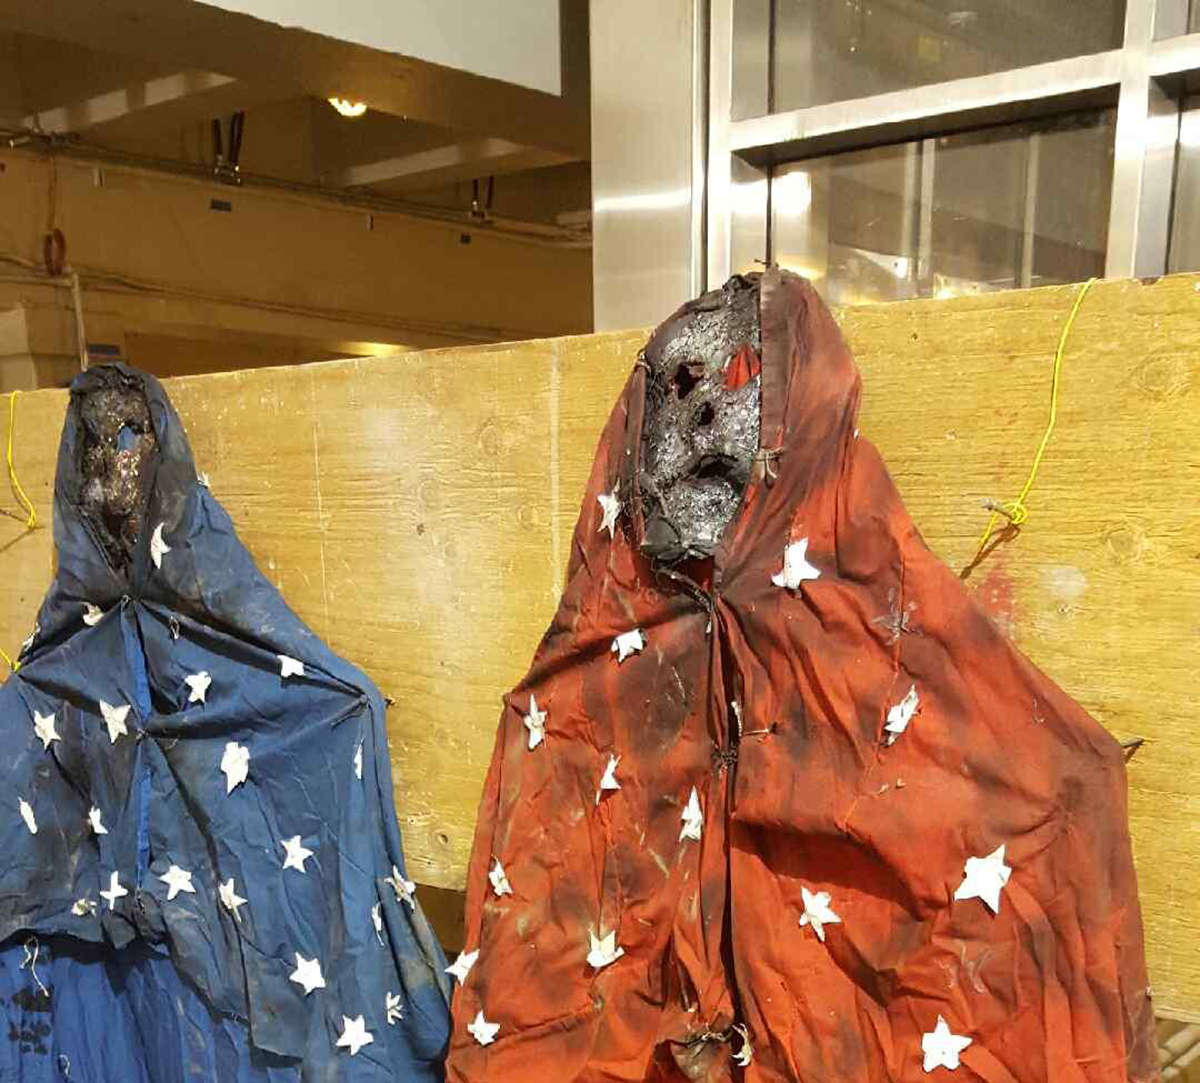 The MBTA discovered these ghoulish figures at Government Center. Photo by Joe Pesaturo via MBTA